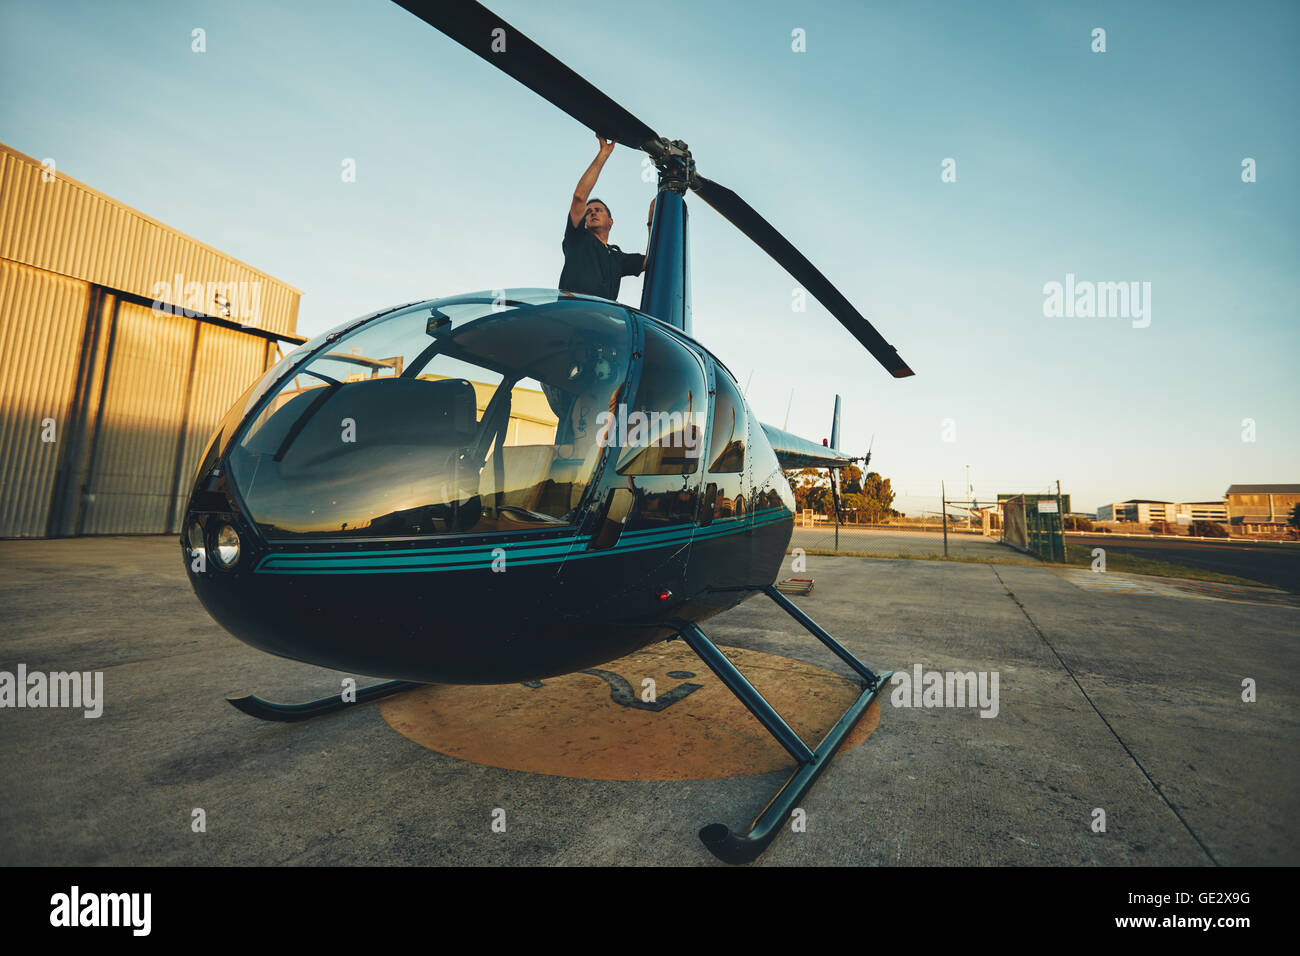 Image of pilot checking the helicopter rotor blades at the airfield. Man inspecting his aircraft before a flight. - Stock Image